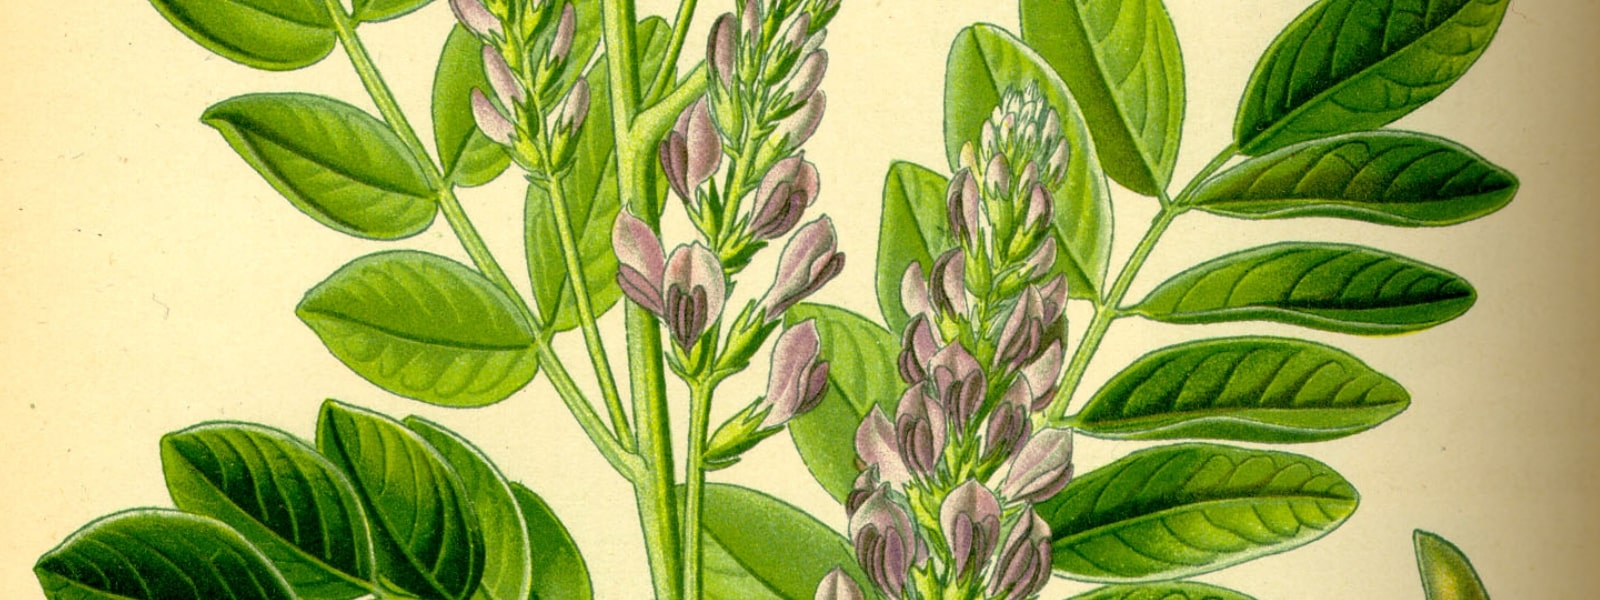 Liquorice plant health benefits